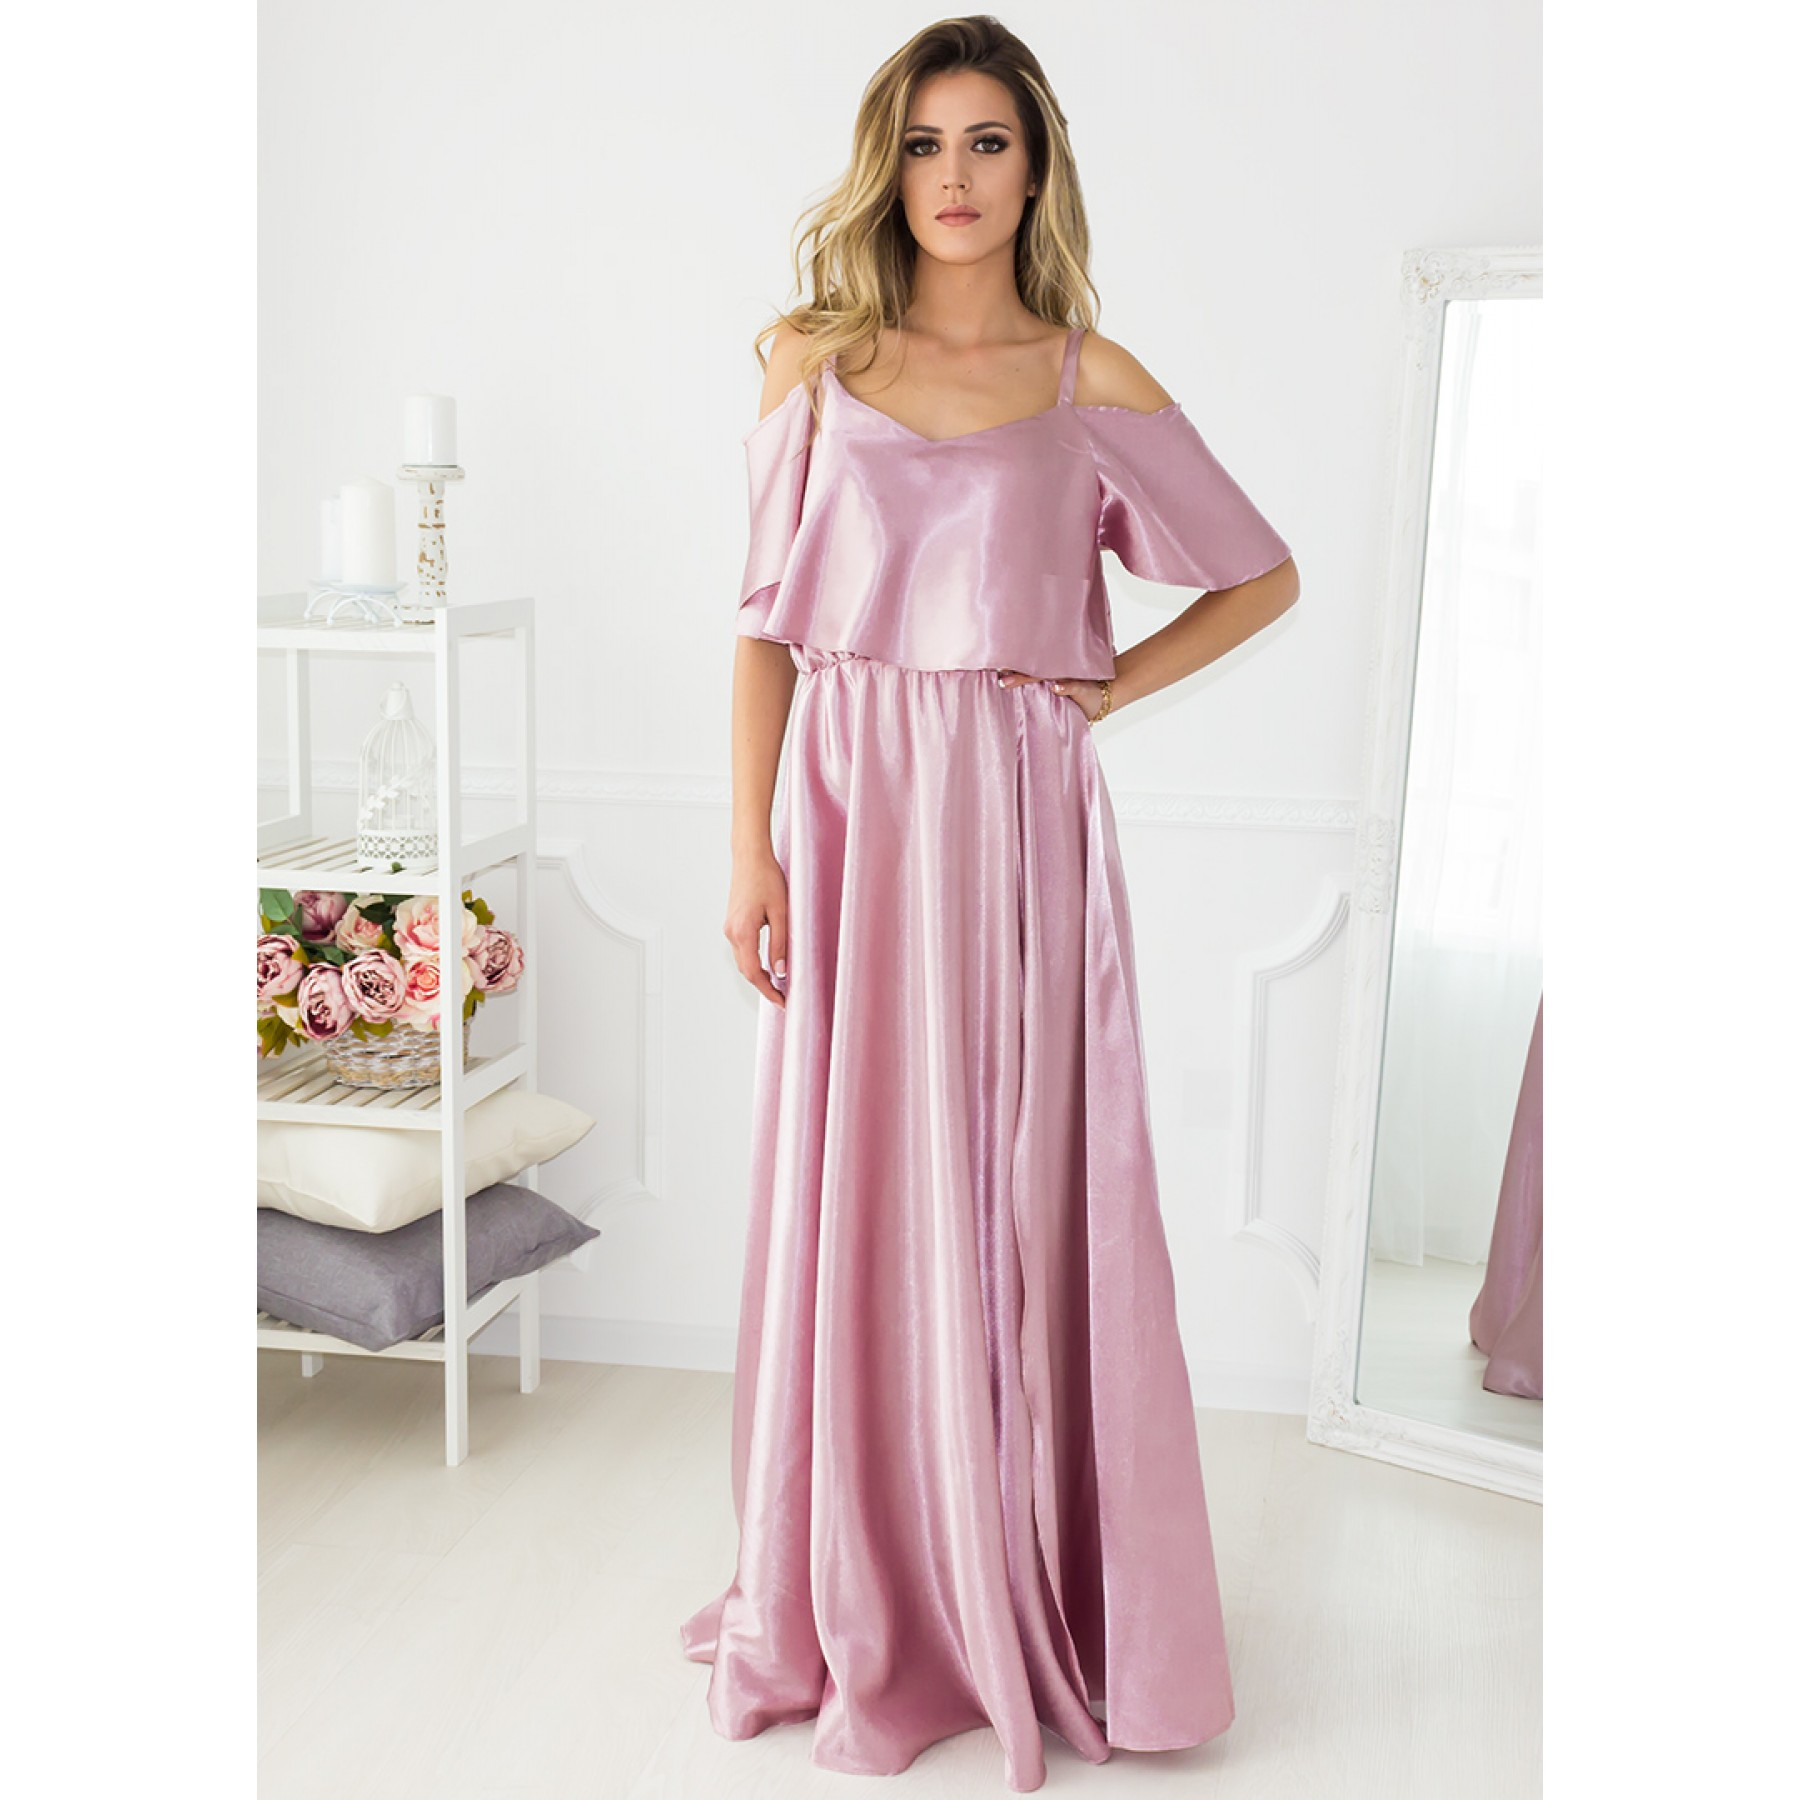 Mermaid Hotel Maxi Dress (Rose)